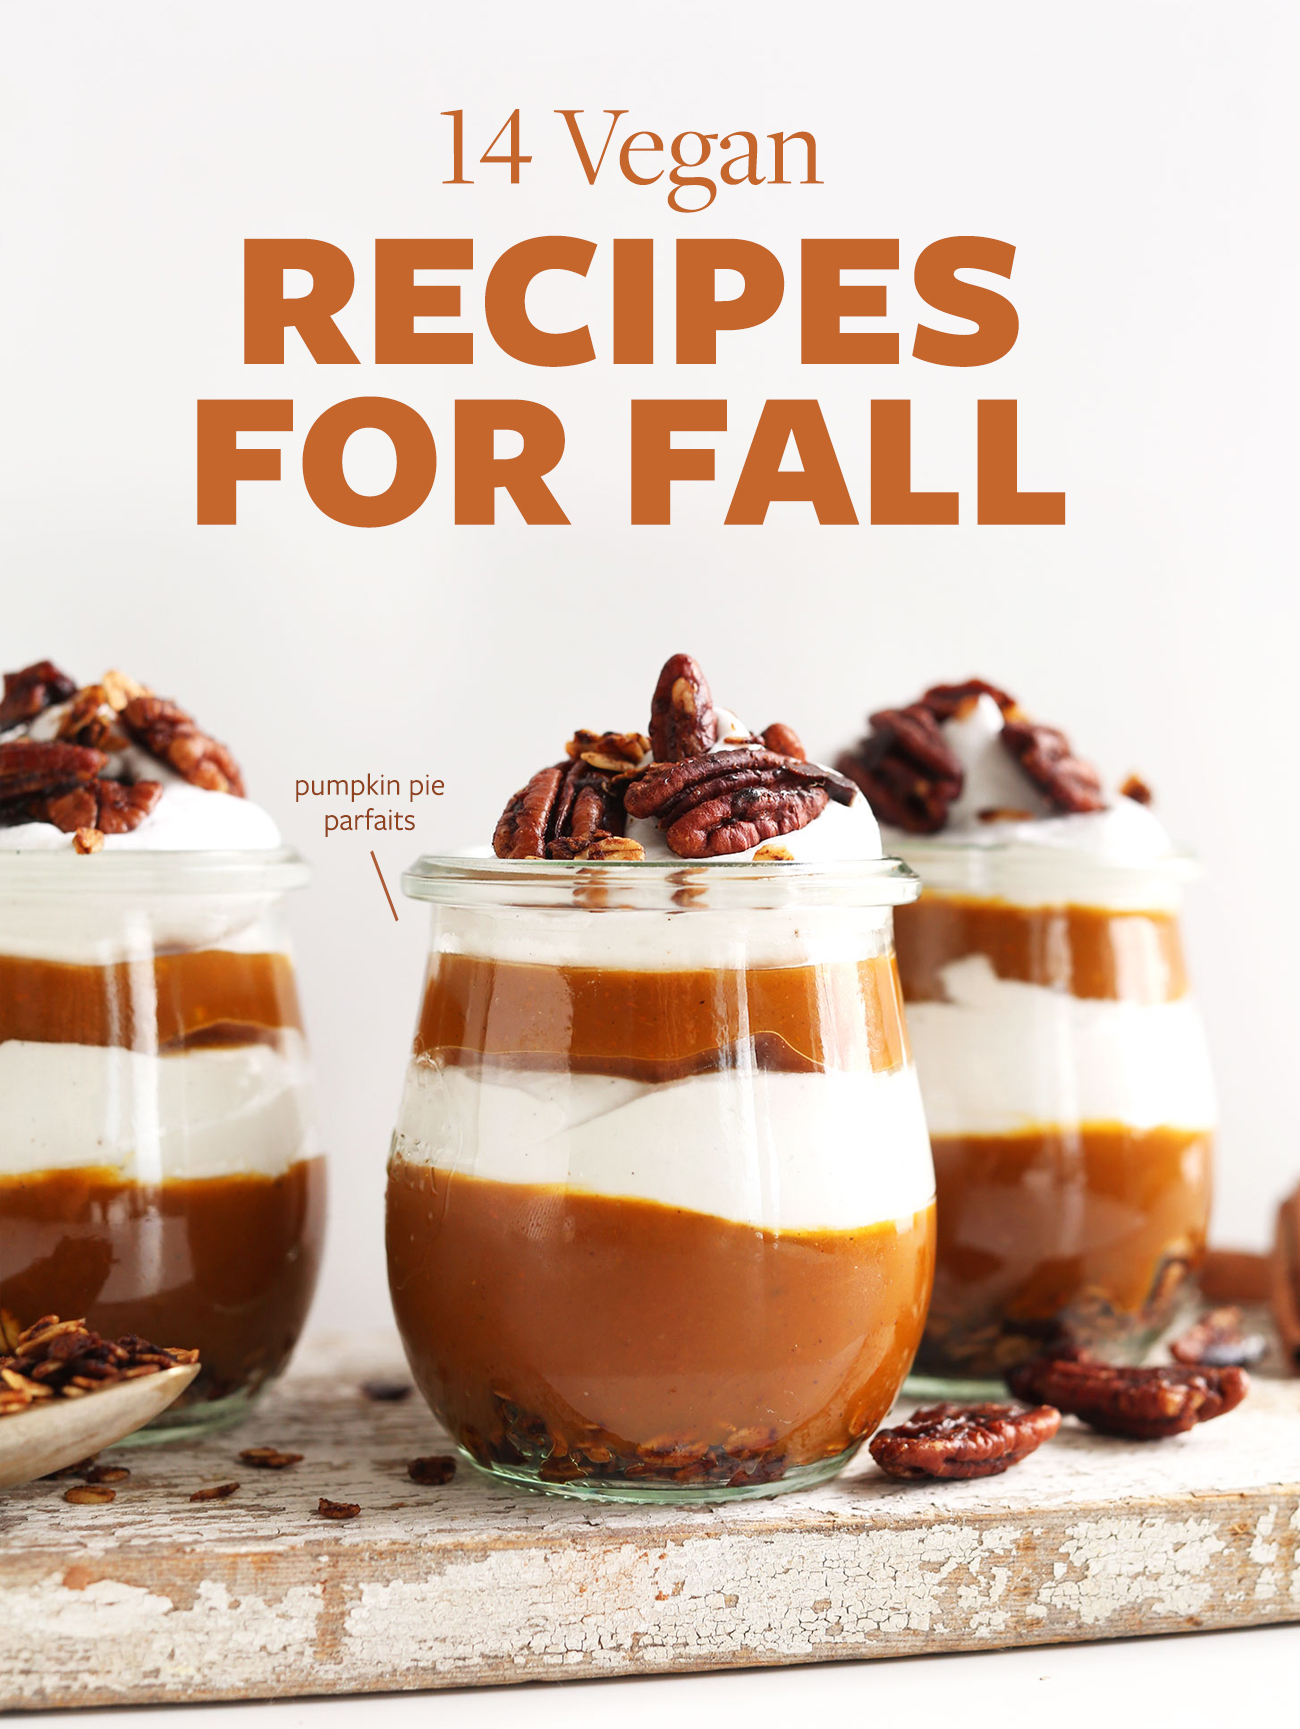 Pumpkin pie parfaits on a wood plank for our 14 Vegan Recipes for Fall roundup